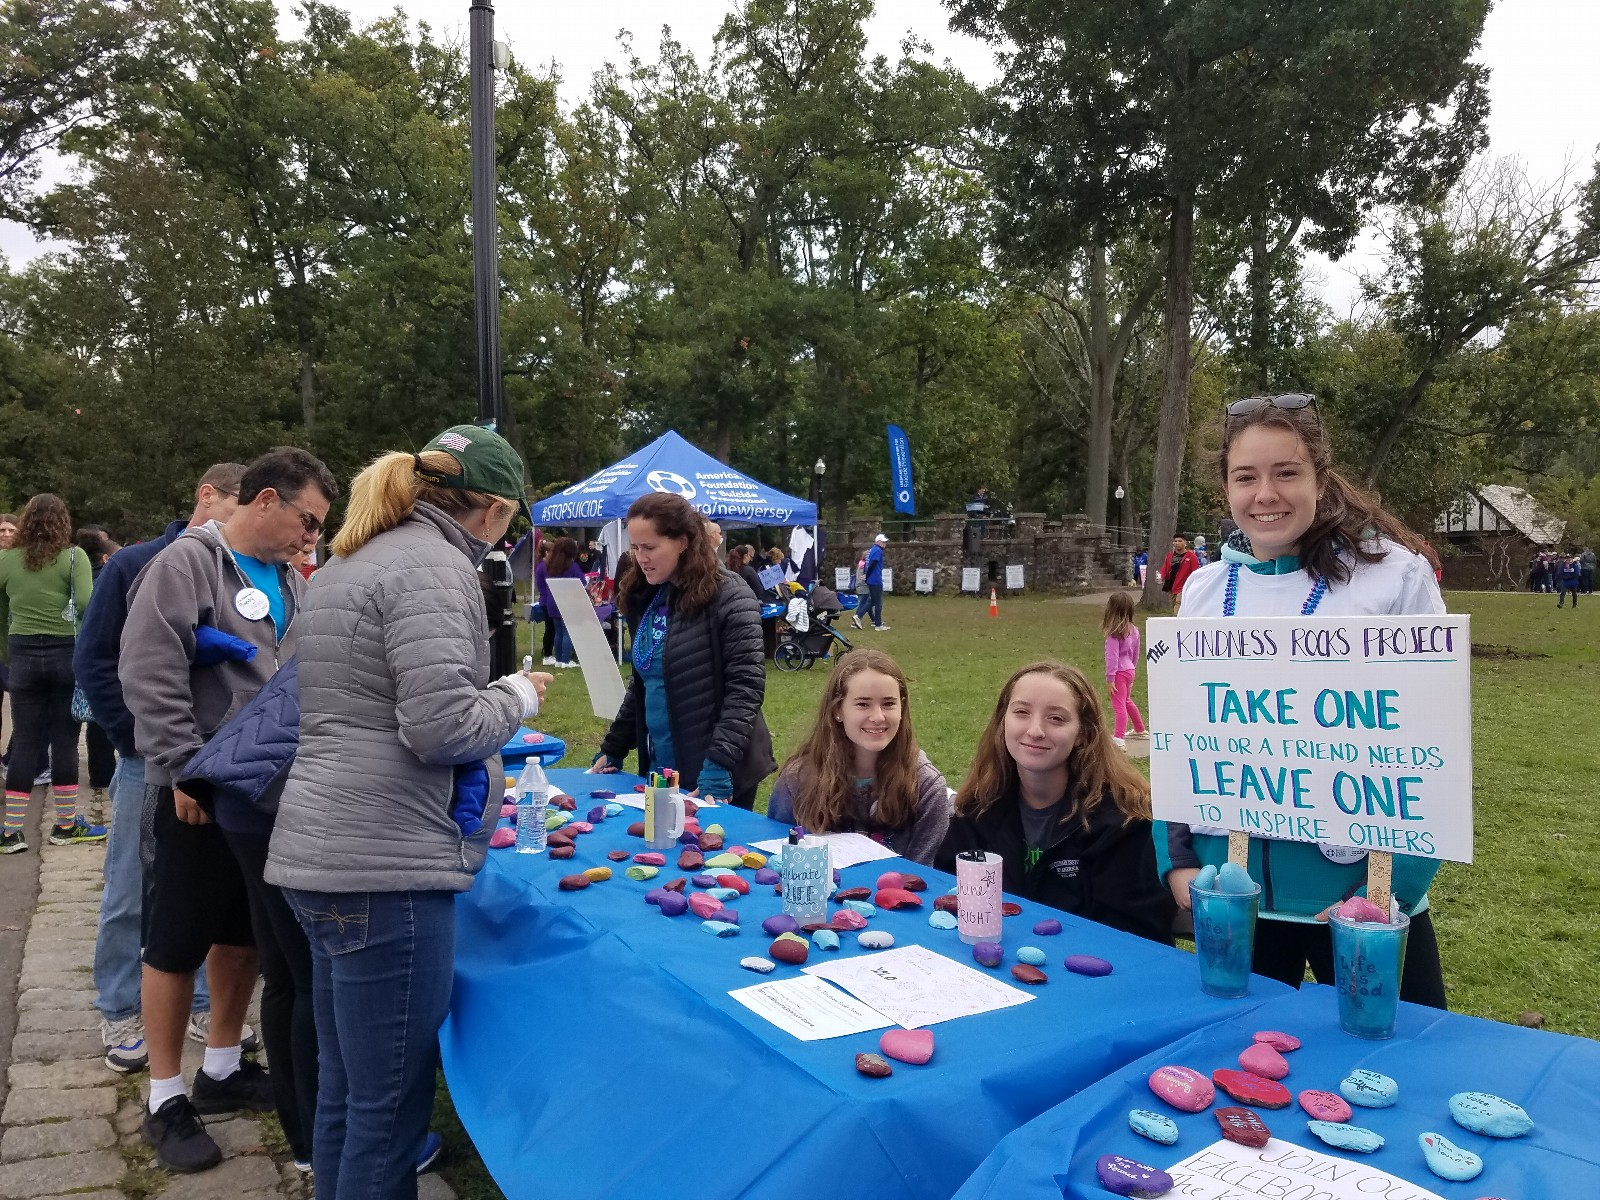 West Essex Out of the Darkness Walk Resource Table